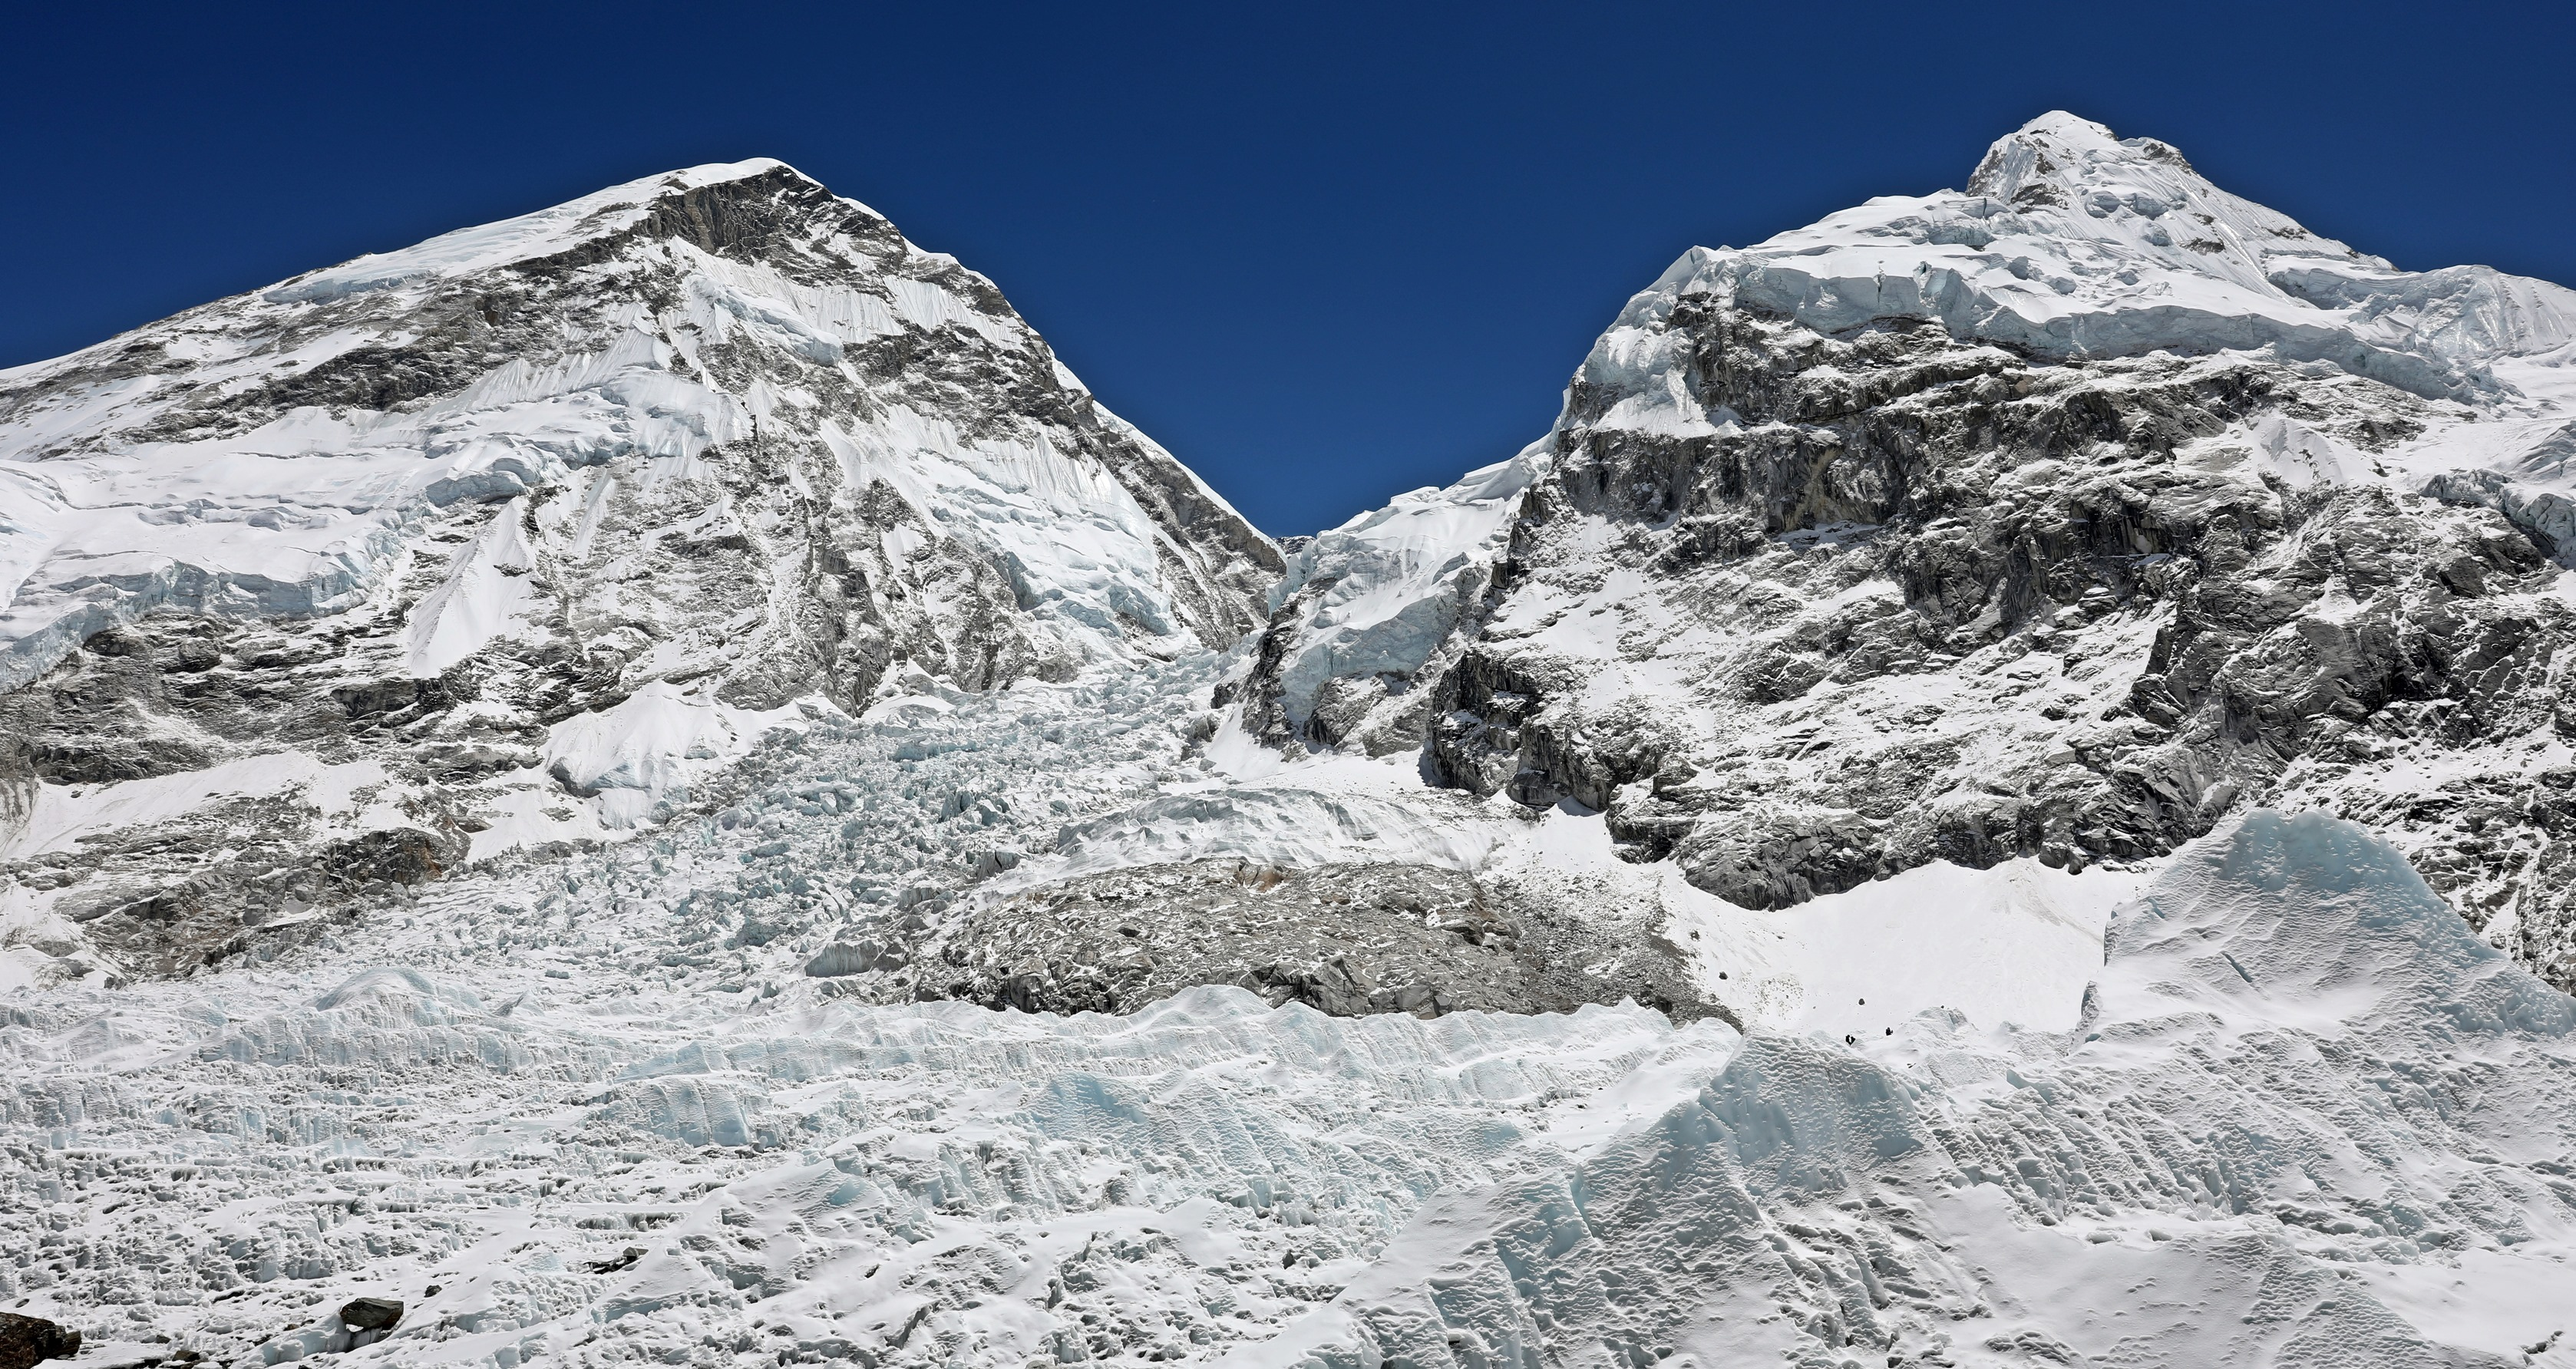 Khumbu Icefield at Base Camp